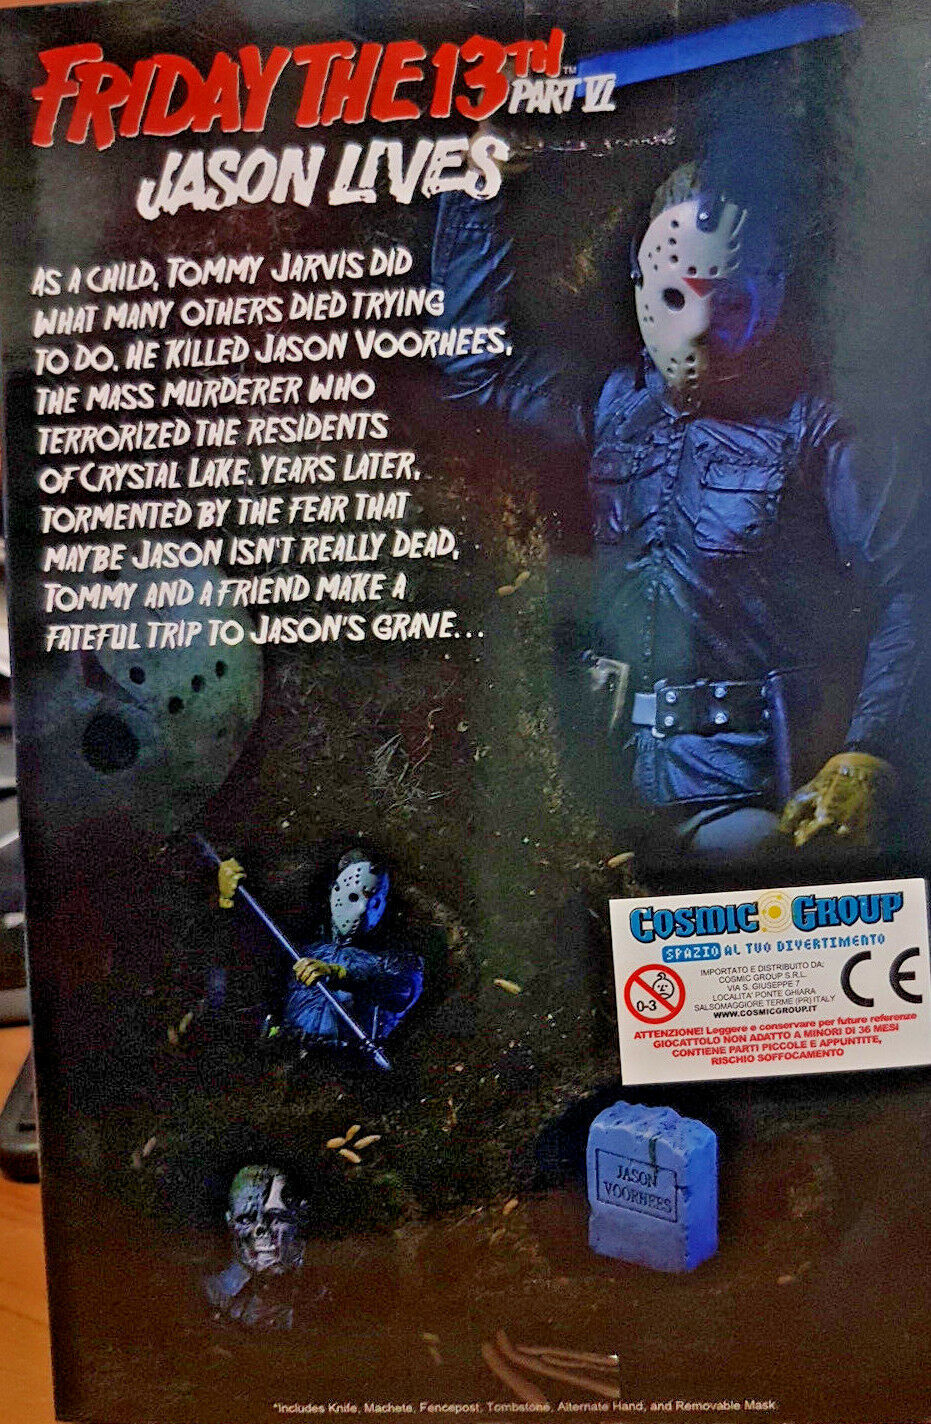 Jason Venerdì 13 Parte 6 6 6 Friday the 13th Part VI - Neca 17cm - Action Figure f80b26